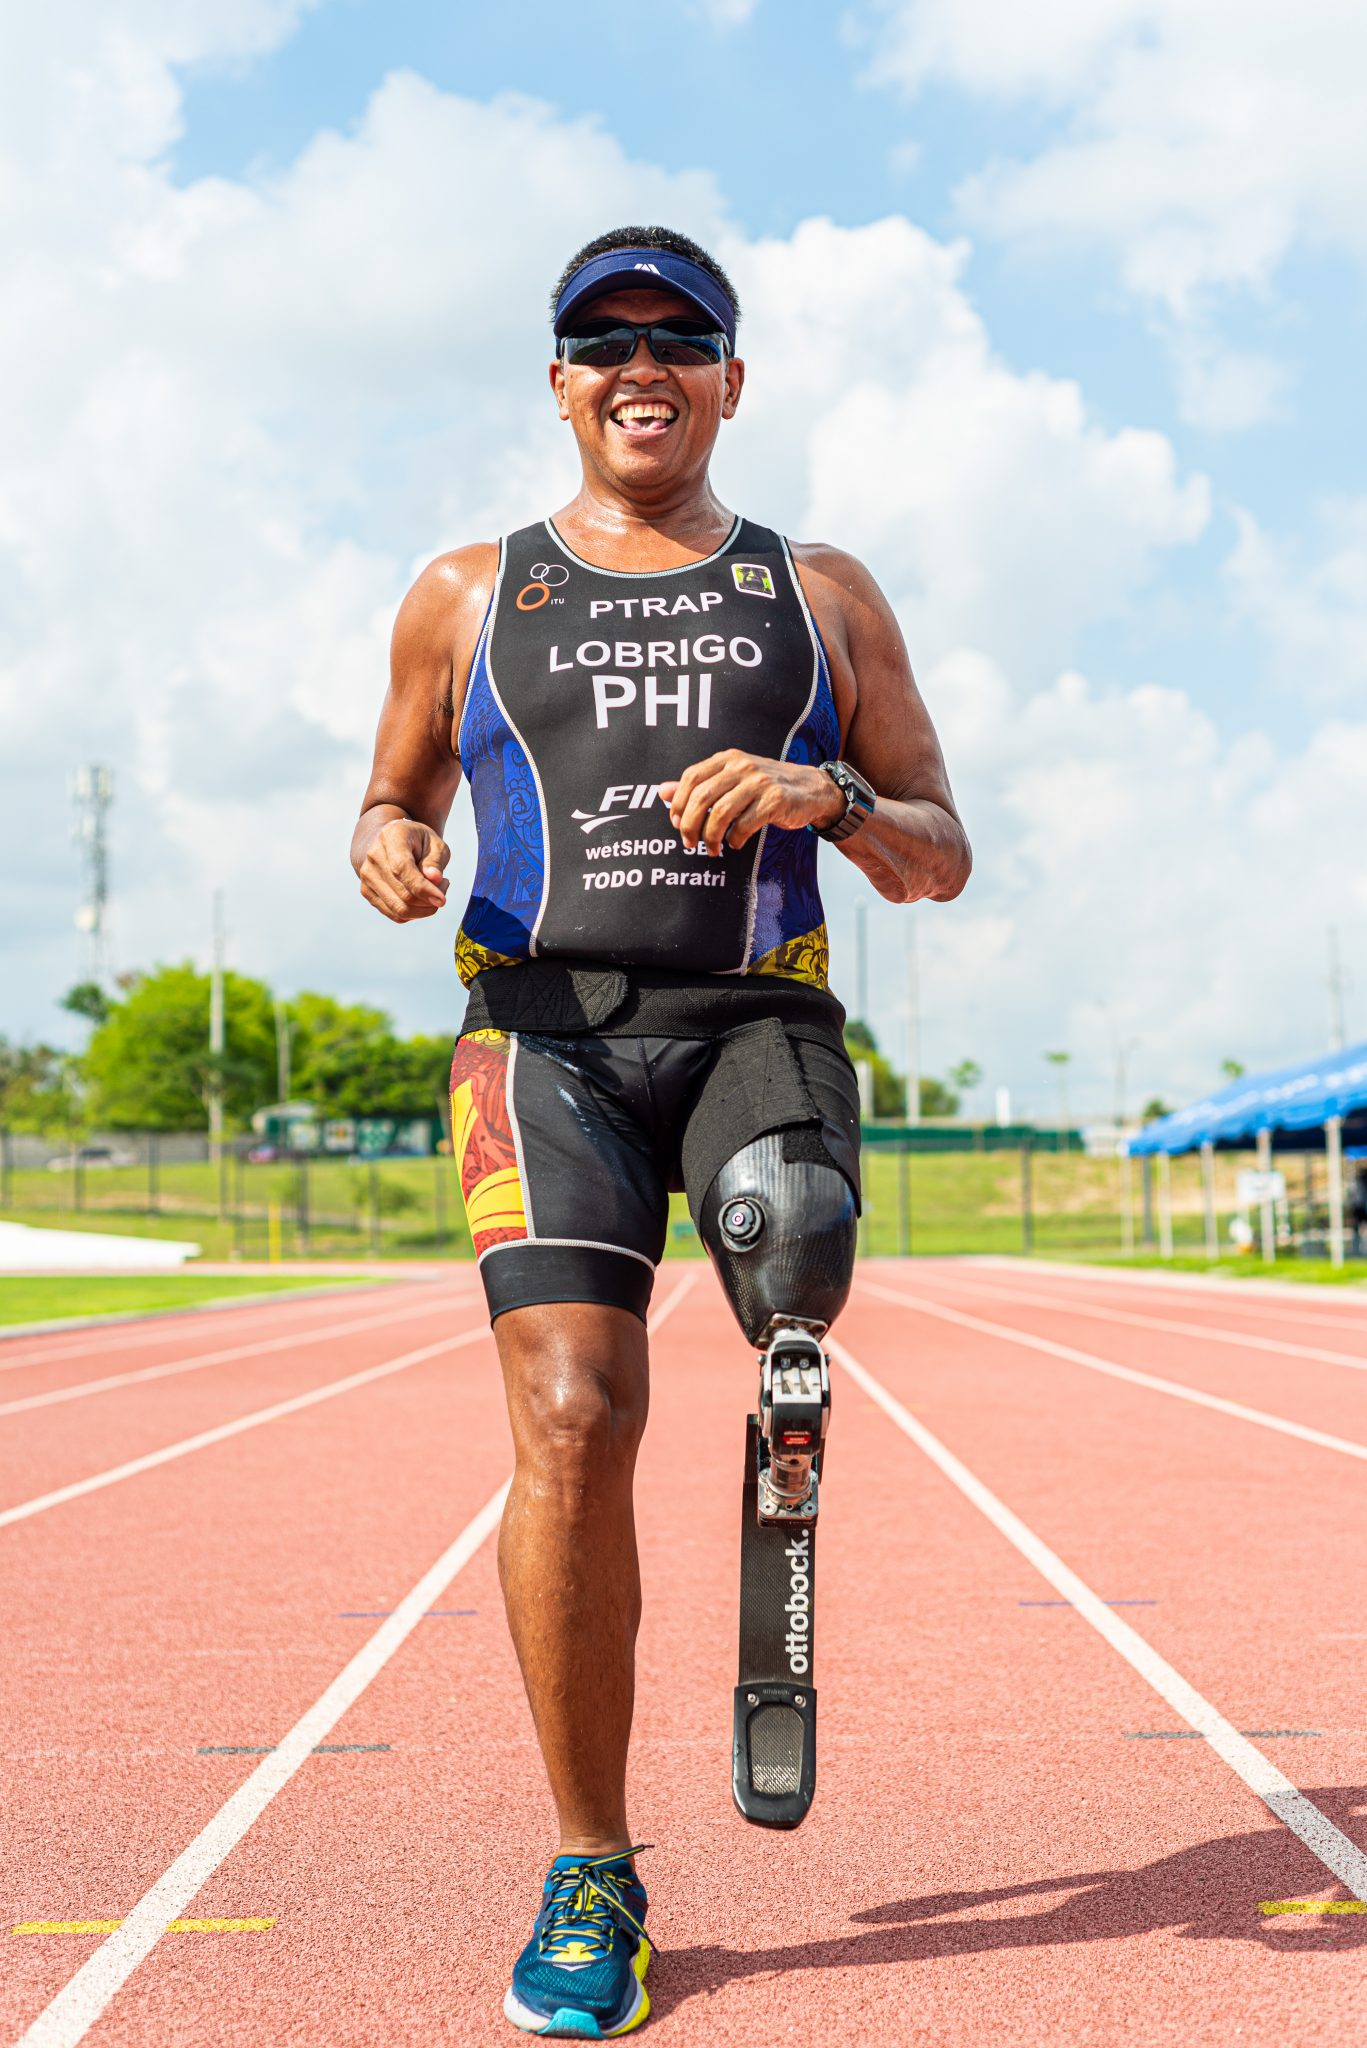 The 44-year-oldparatriathlete is also affiliated with Tri Marikina